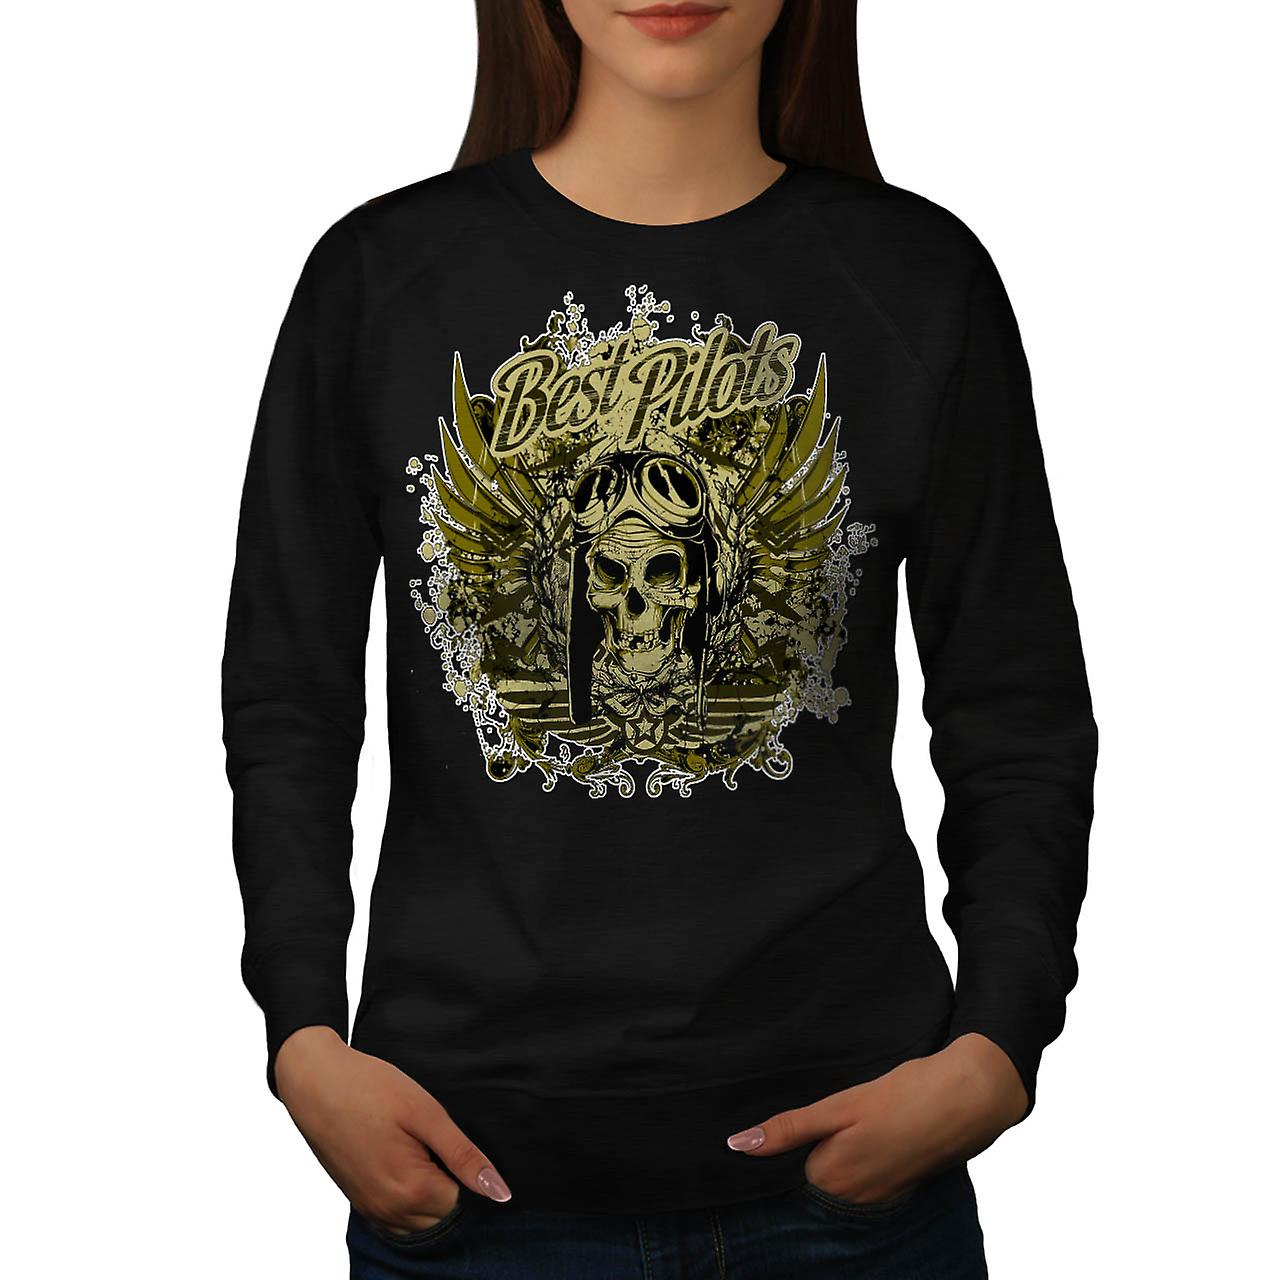 Best Pilot Fly Plane Flight Hell Women Black Sweatshirt | Wellcoda